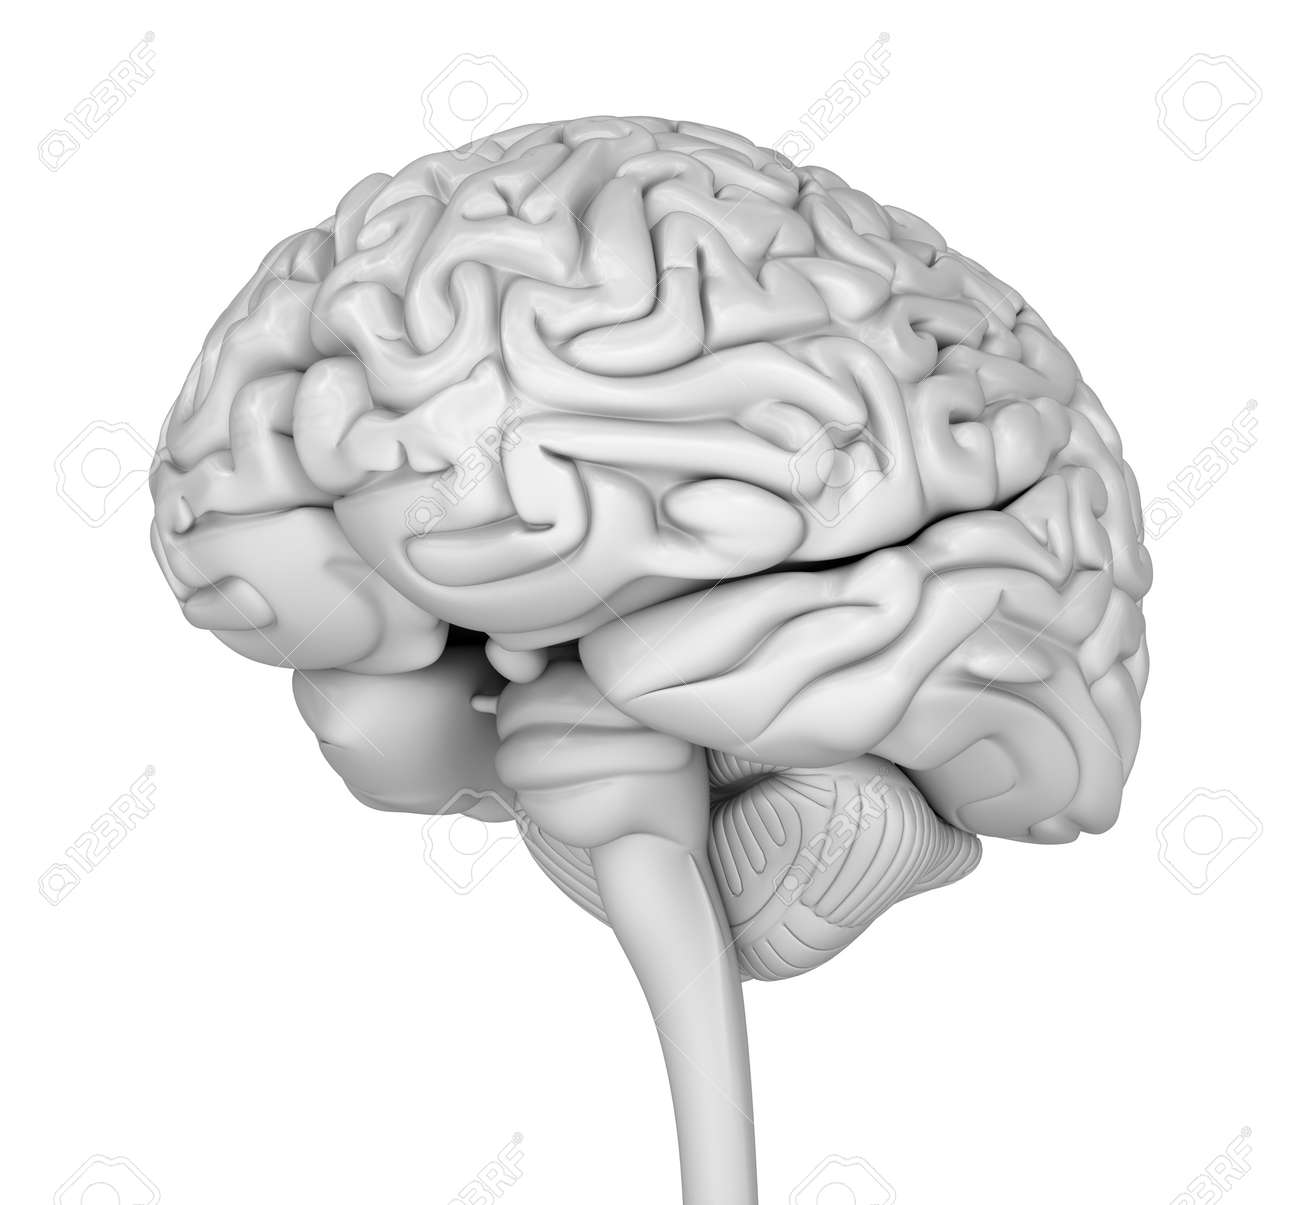 Human Brain 3D Model. Medically Accurate 3D Illustration Stock Photo ...